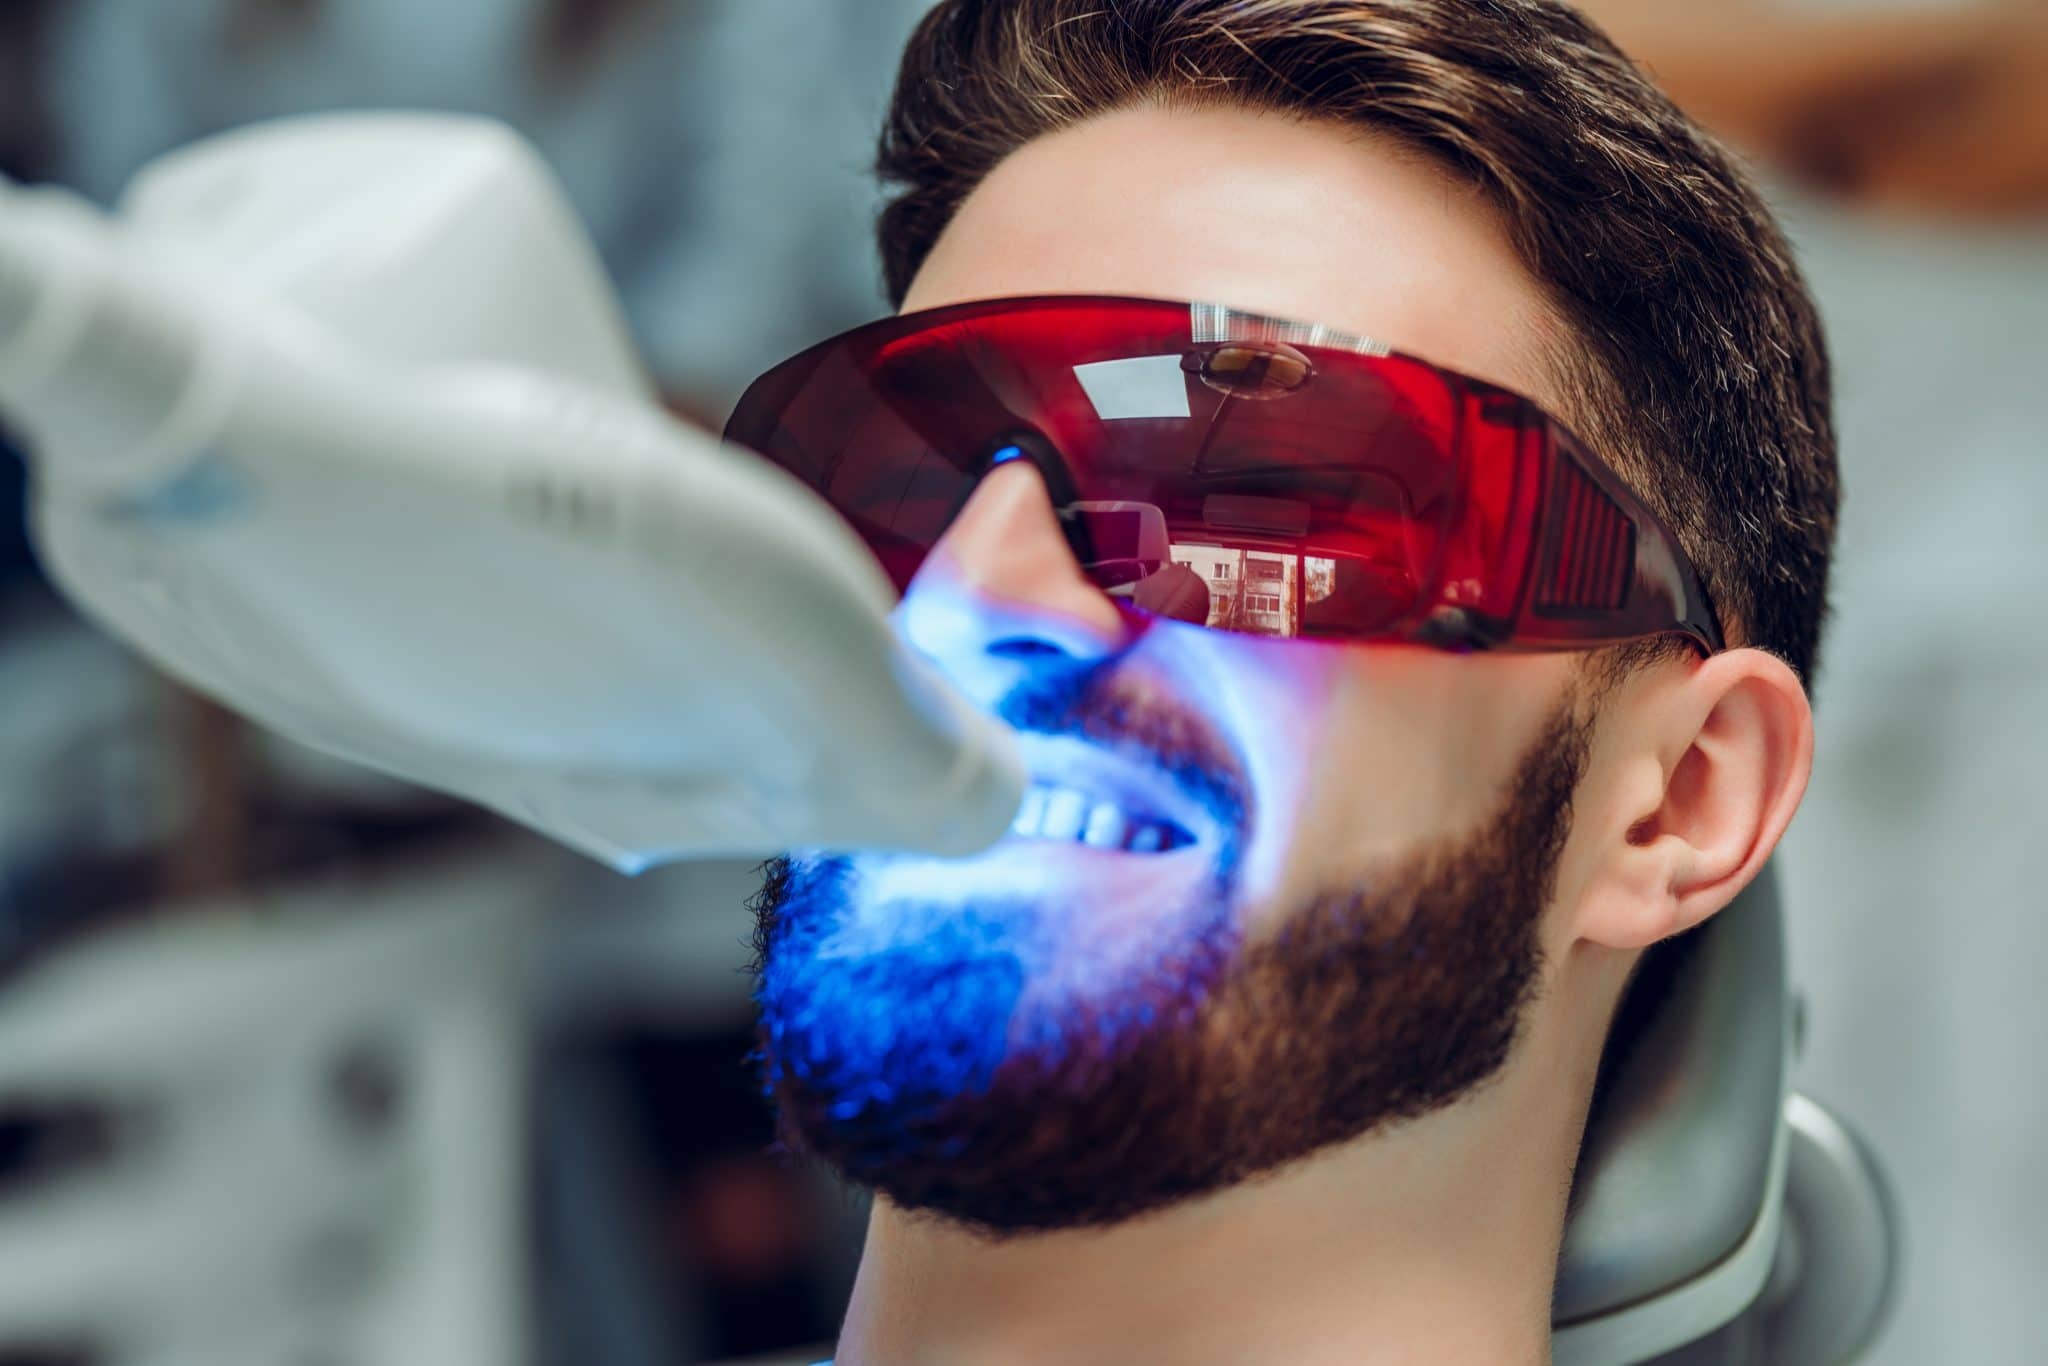 blanqueamiento de dientes luz blog post featured image boston cosmetic dentist